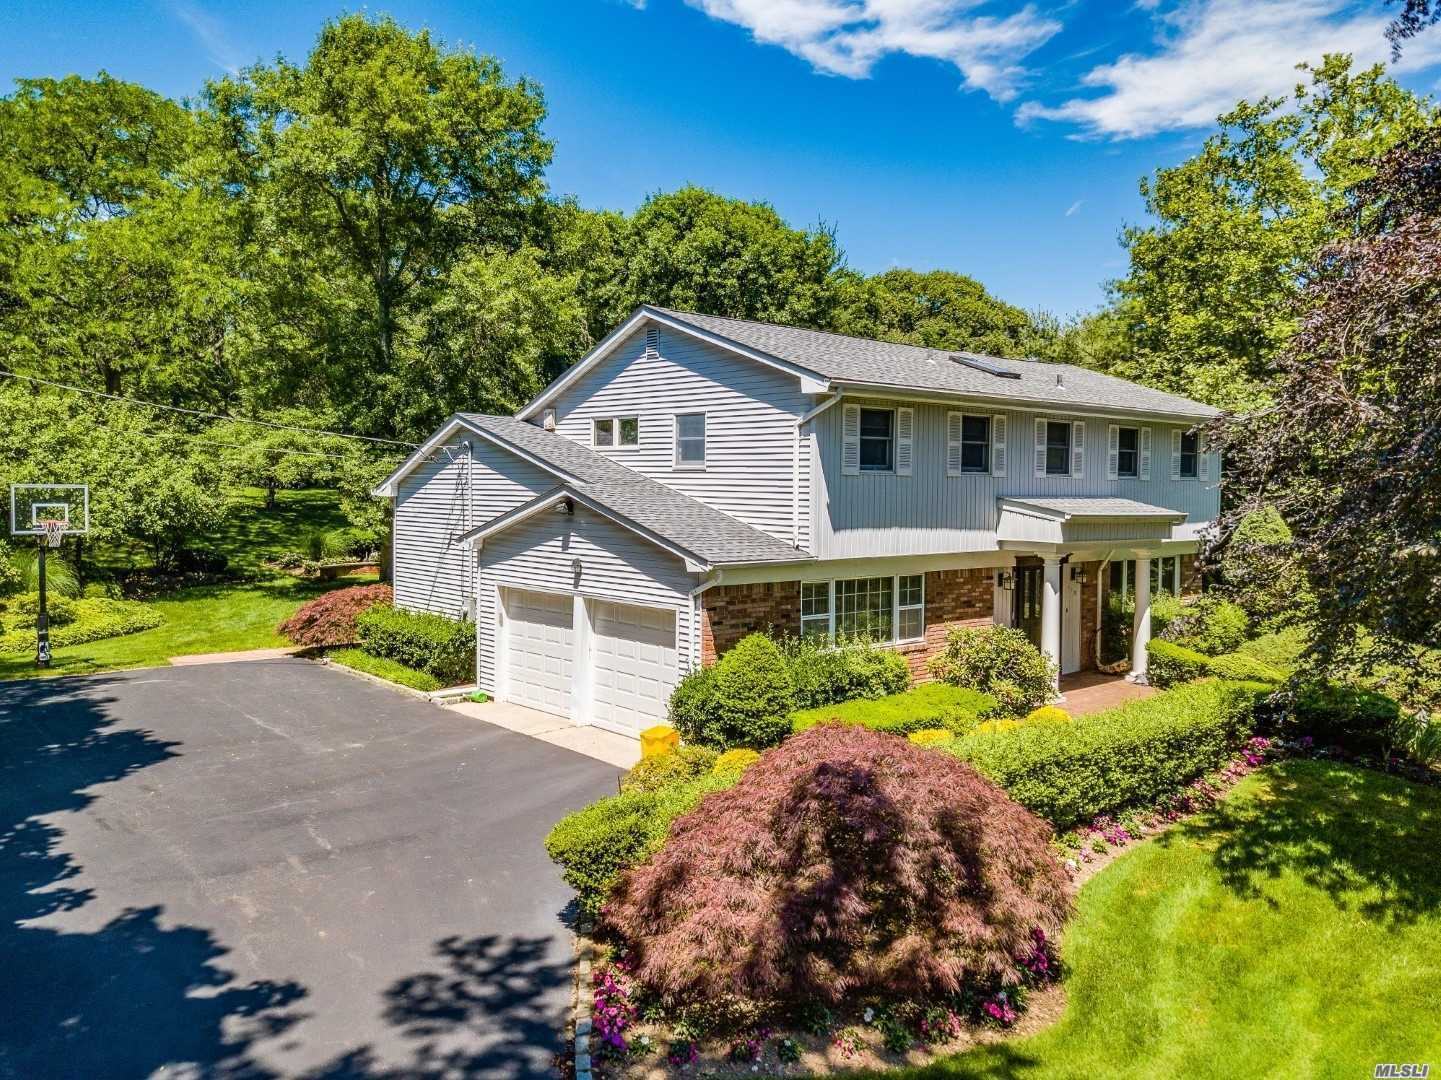 Perfect Location In N. Syosset! Exp 4 Bedroom, 2.5 Bath Splanch. Open Floor Plan W/Updated Kitchen With Wood Cabinets, Granite Counters And Stainless Appliances That Opens To Oversized Family Room With Sliders To Patio. Large Master Bedroom Suite With Walls Of Closets And Sitting Area. Full Expanded Finished Basement. Parklike 1 Acre Property W/ Vinyl Pool. Berry Hill Elementary